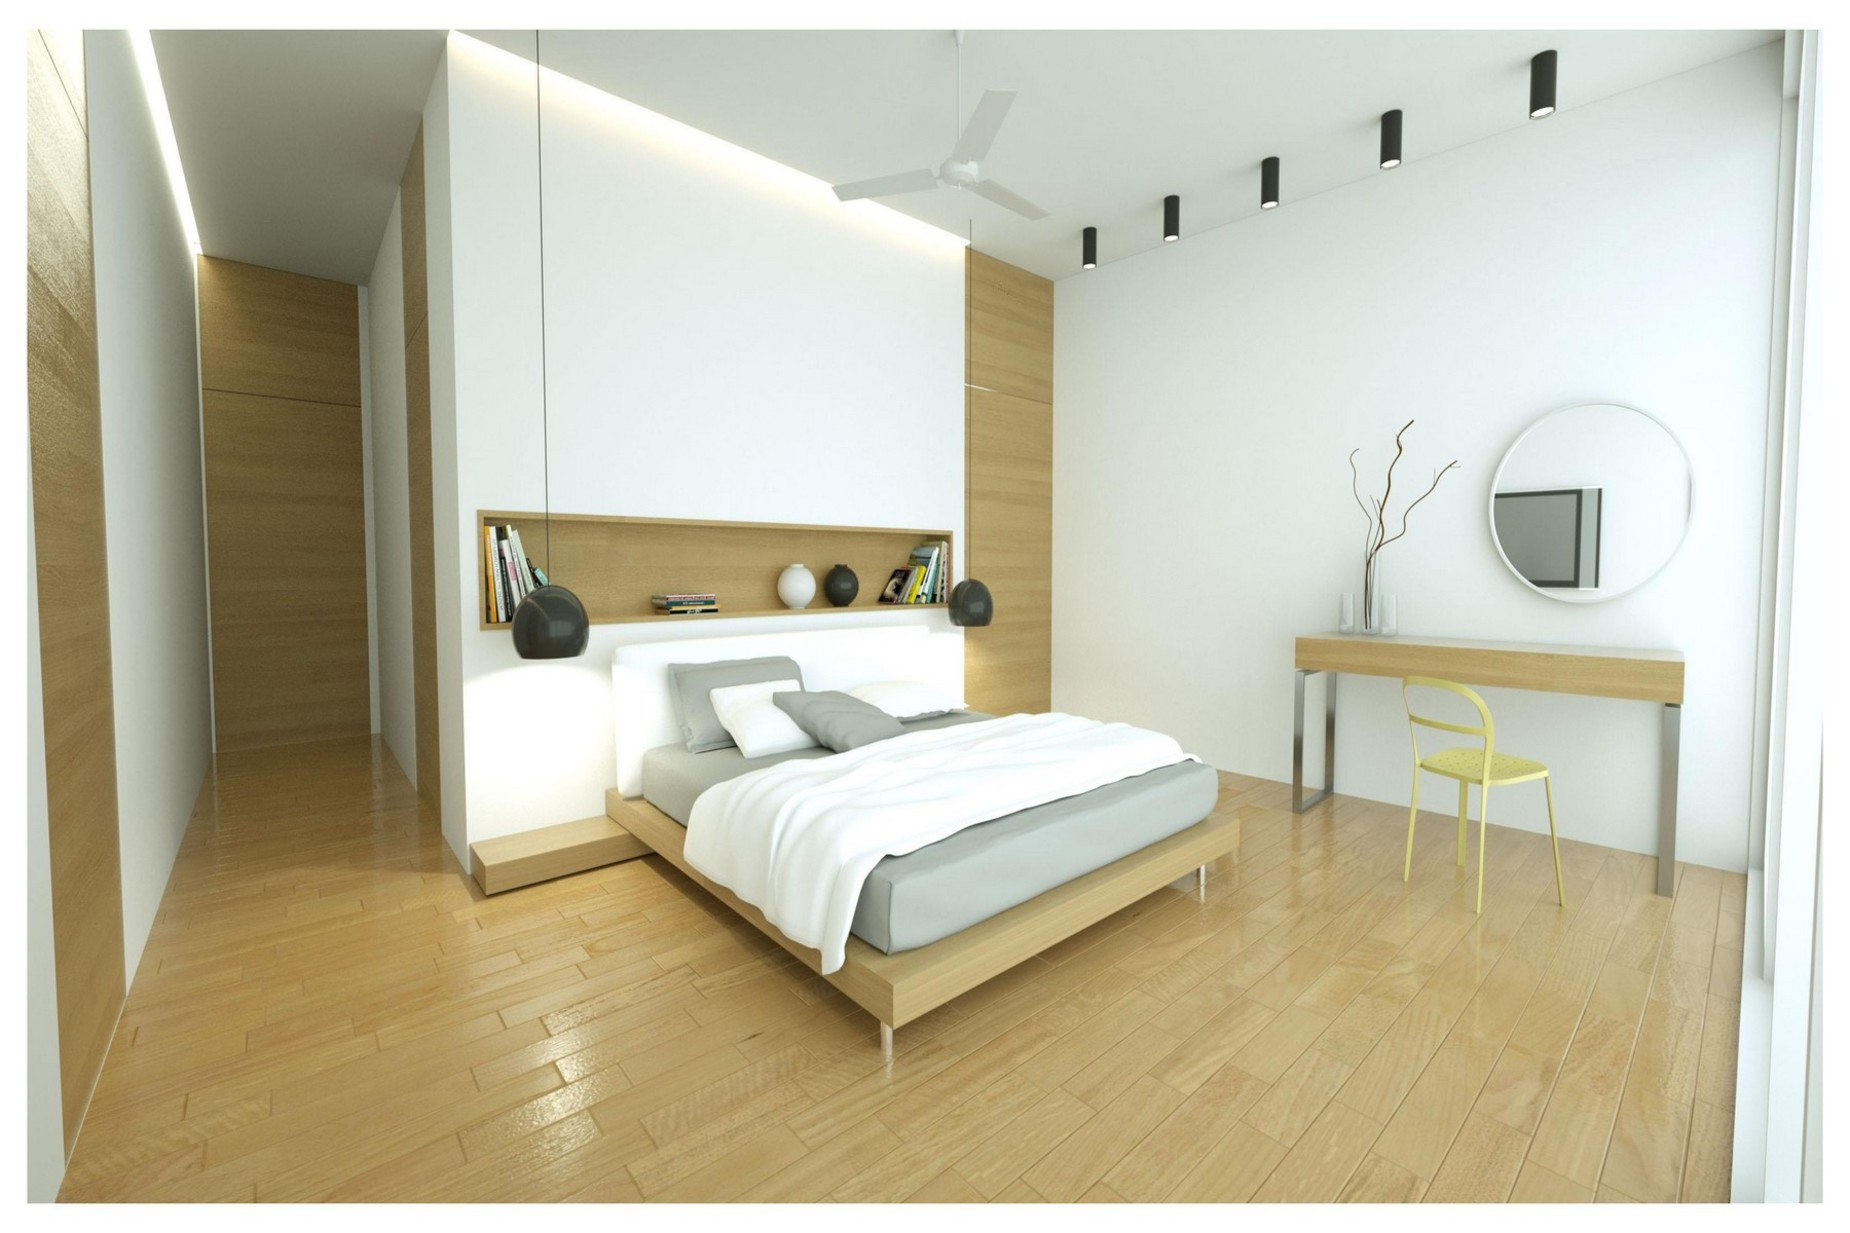 3 bed Penthouse For Sale in Sliema, Sliema - thumb 5